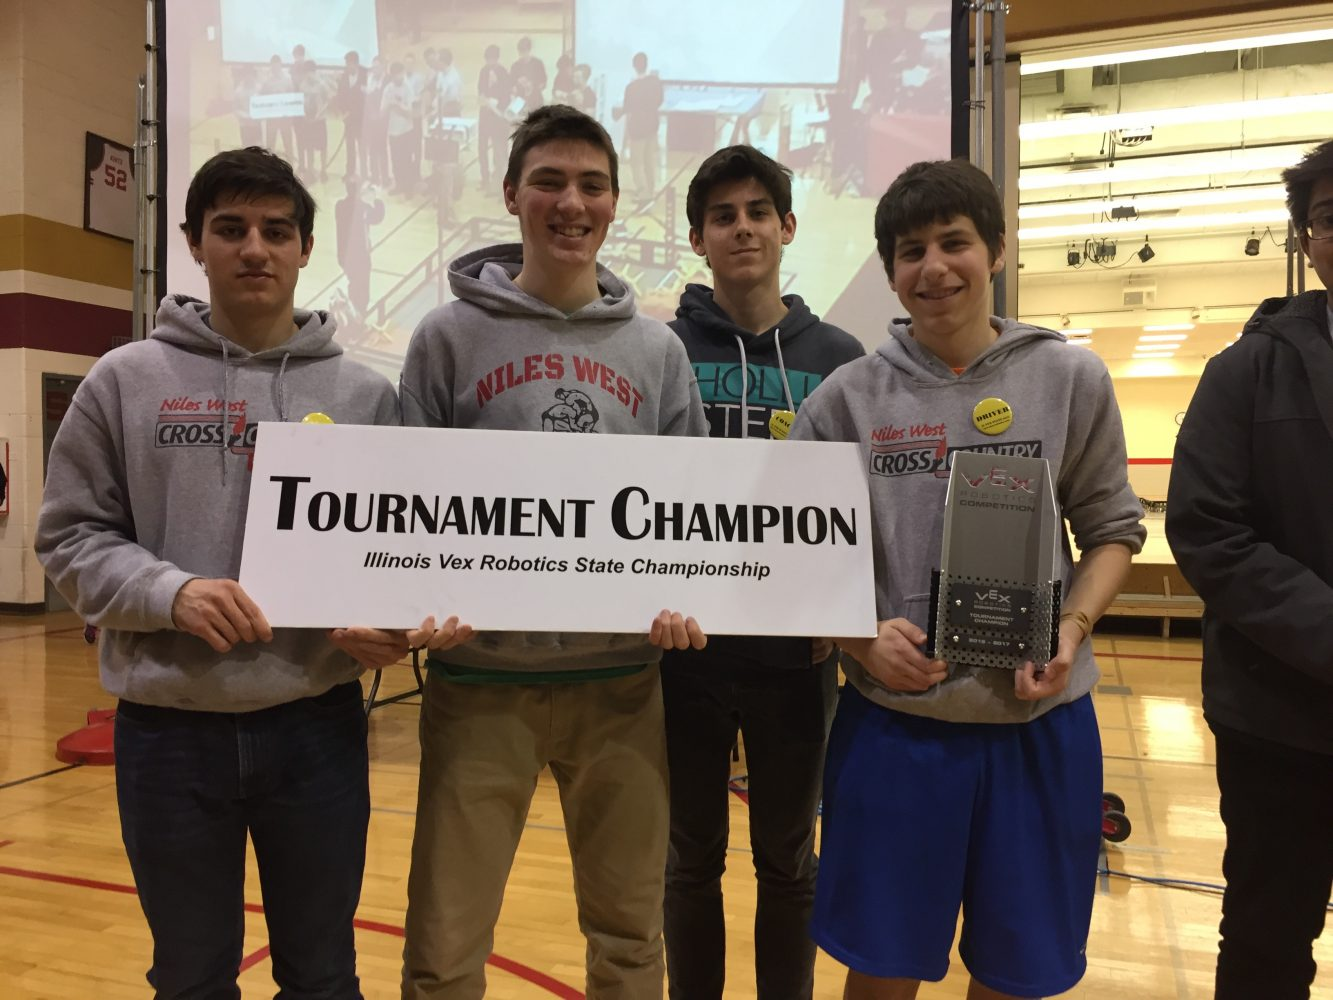 D219+Robotics+Teams+Advance+To+World+Competition+After+Earning+State+Title